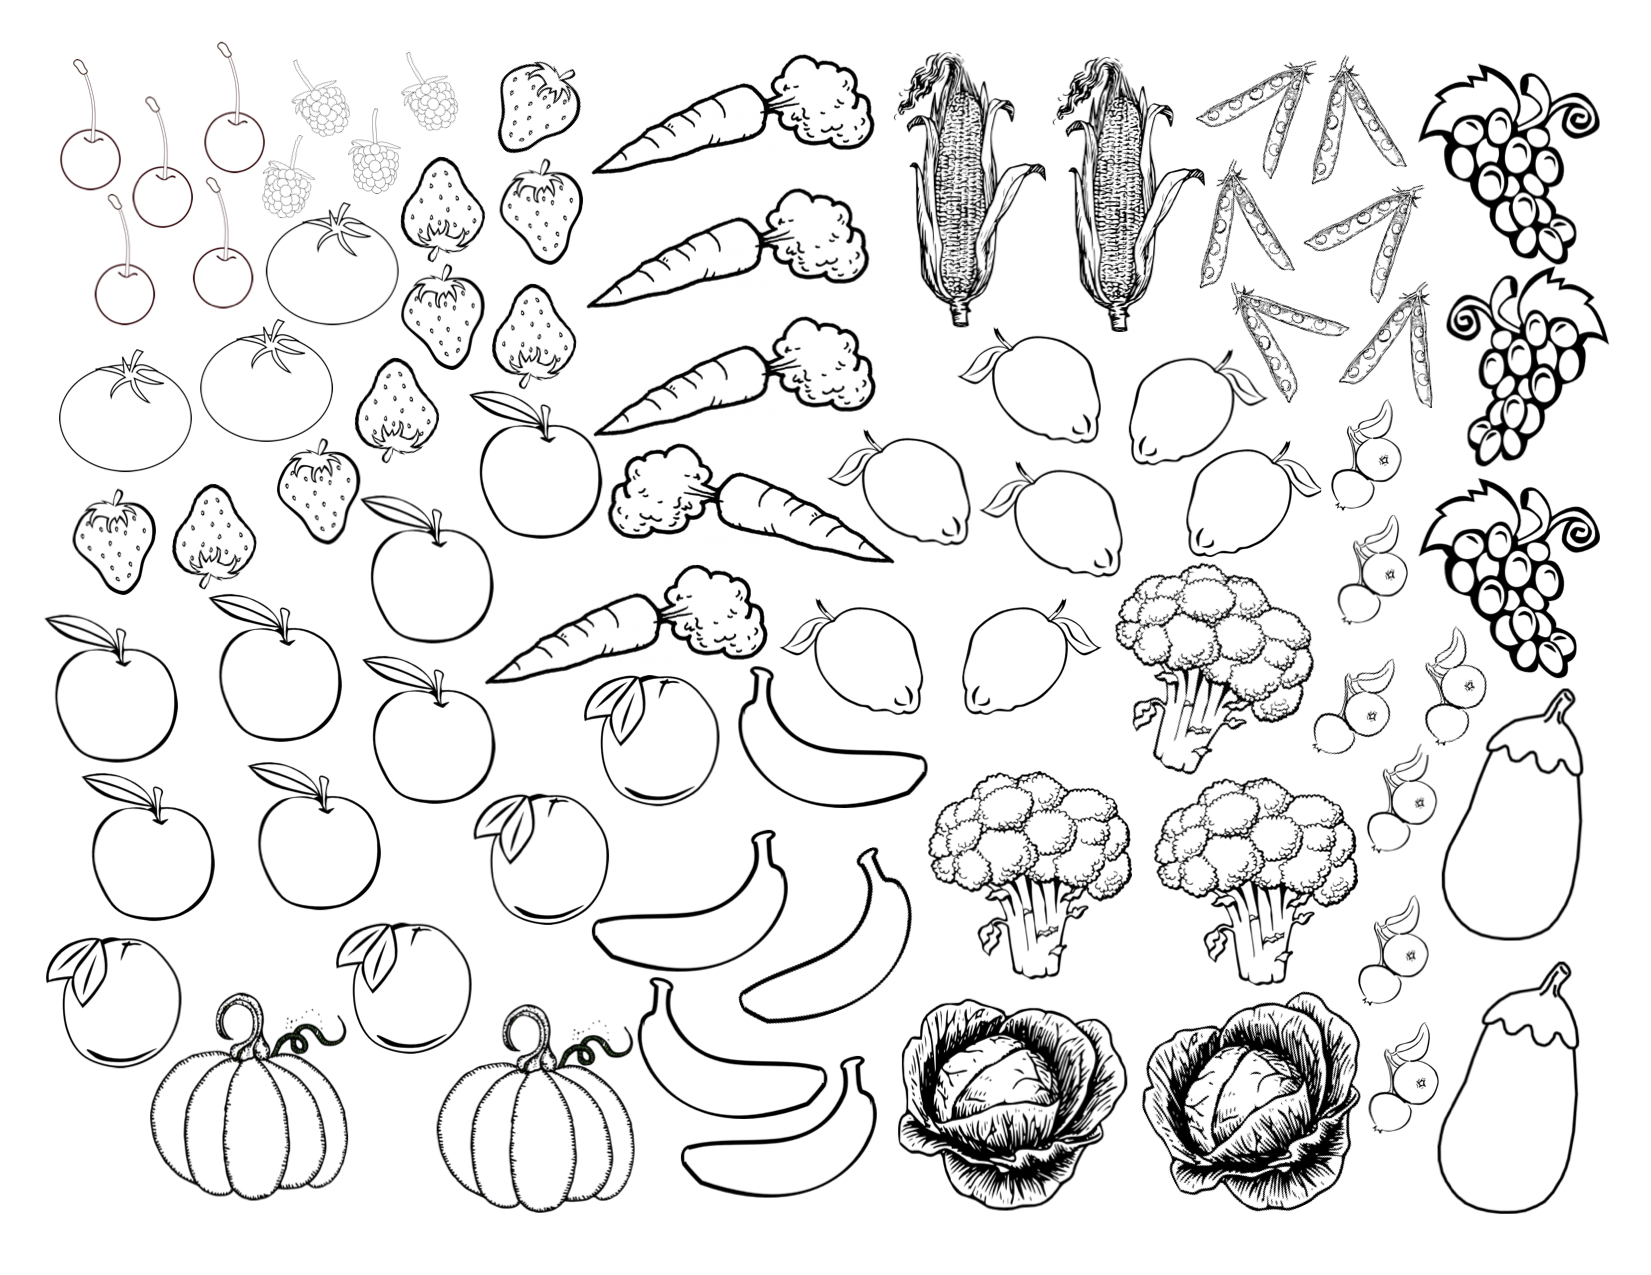 Fruit And Vegetable Coloring Pages To Print - High Quality ...